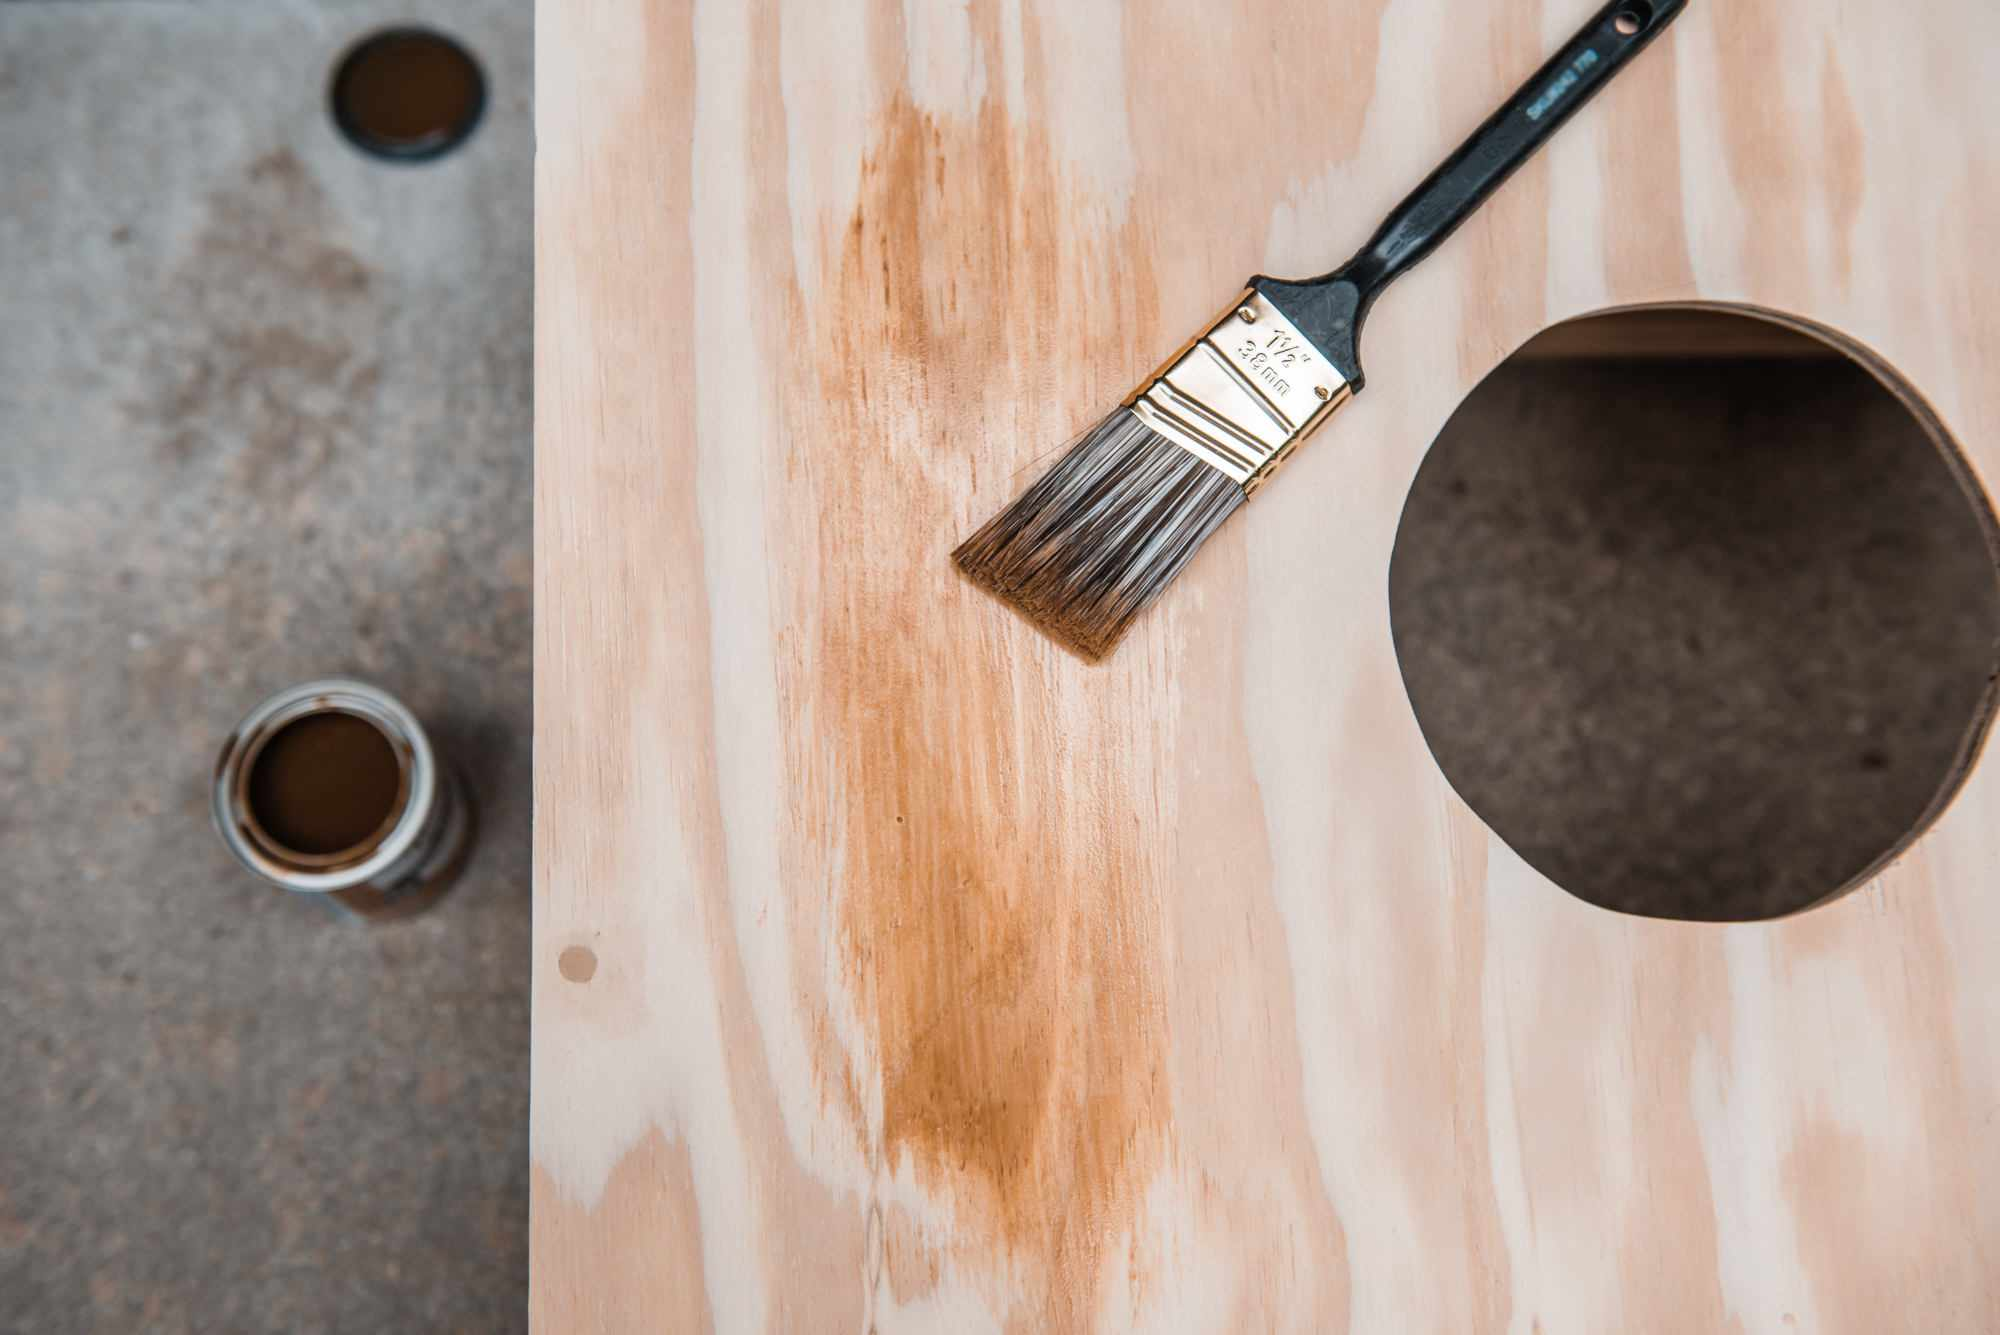 adding stain to the wood